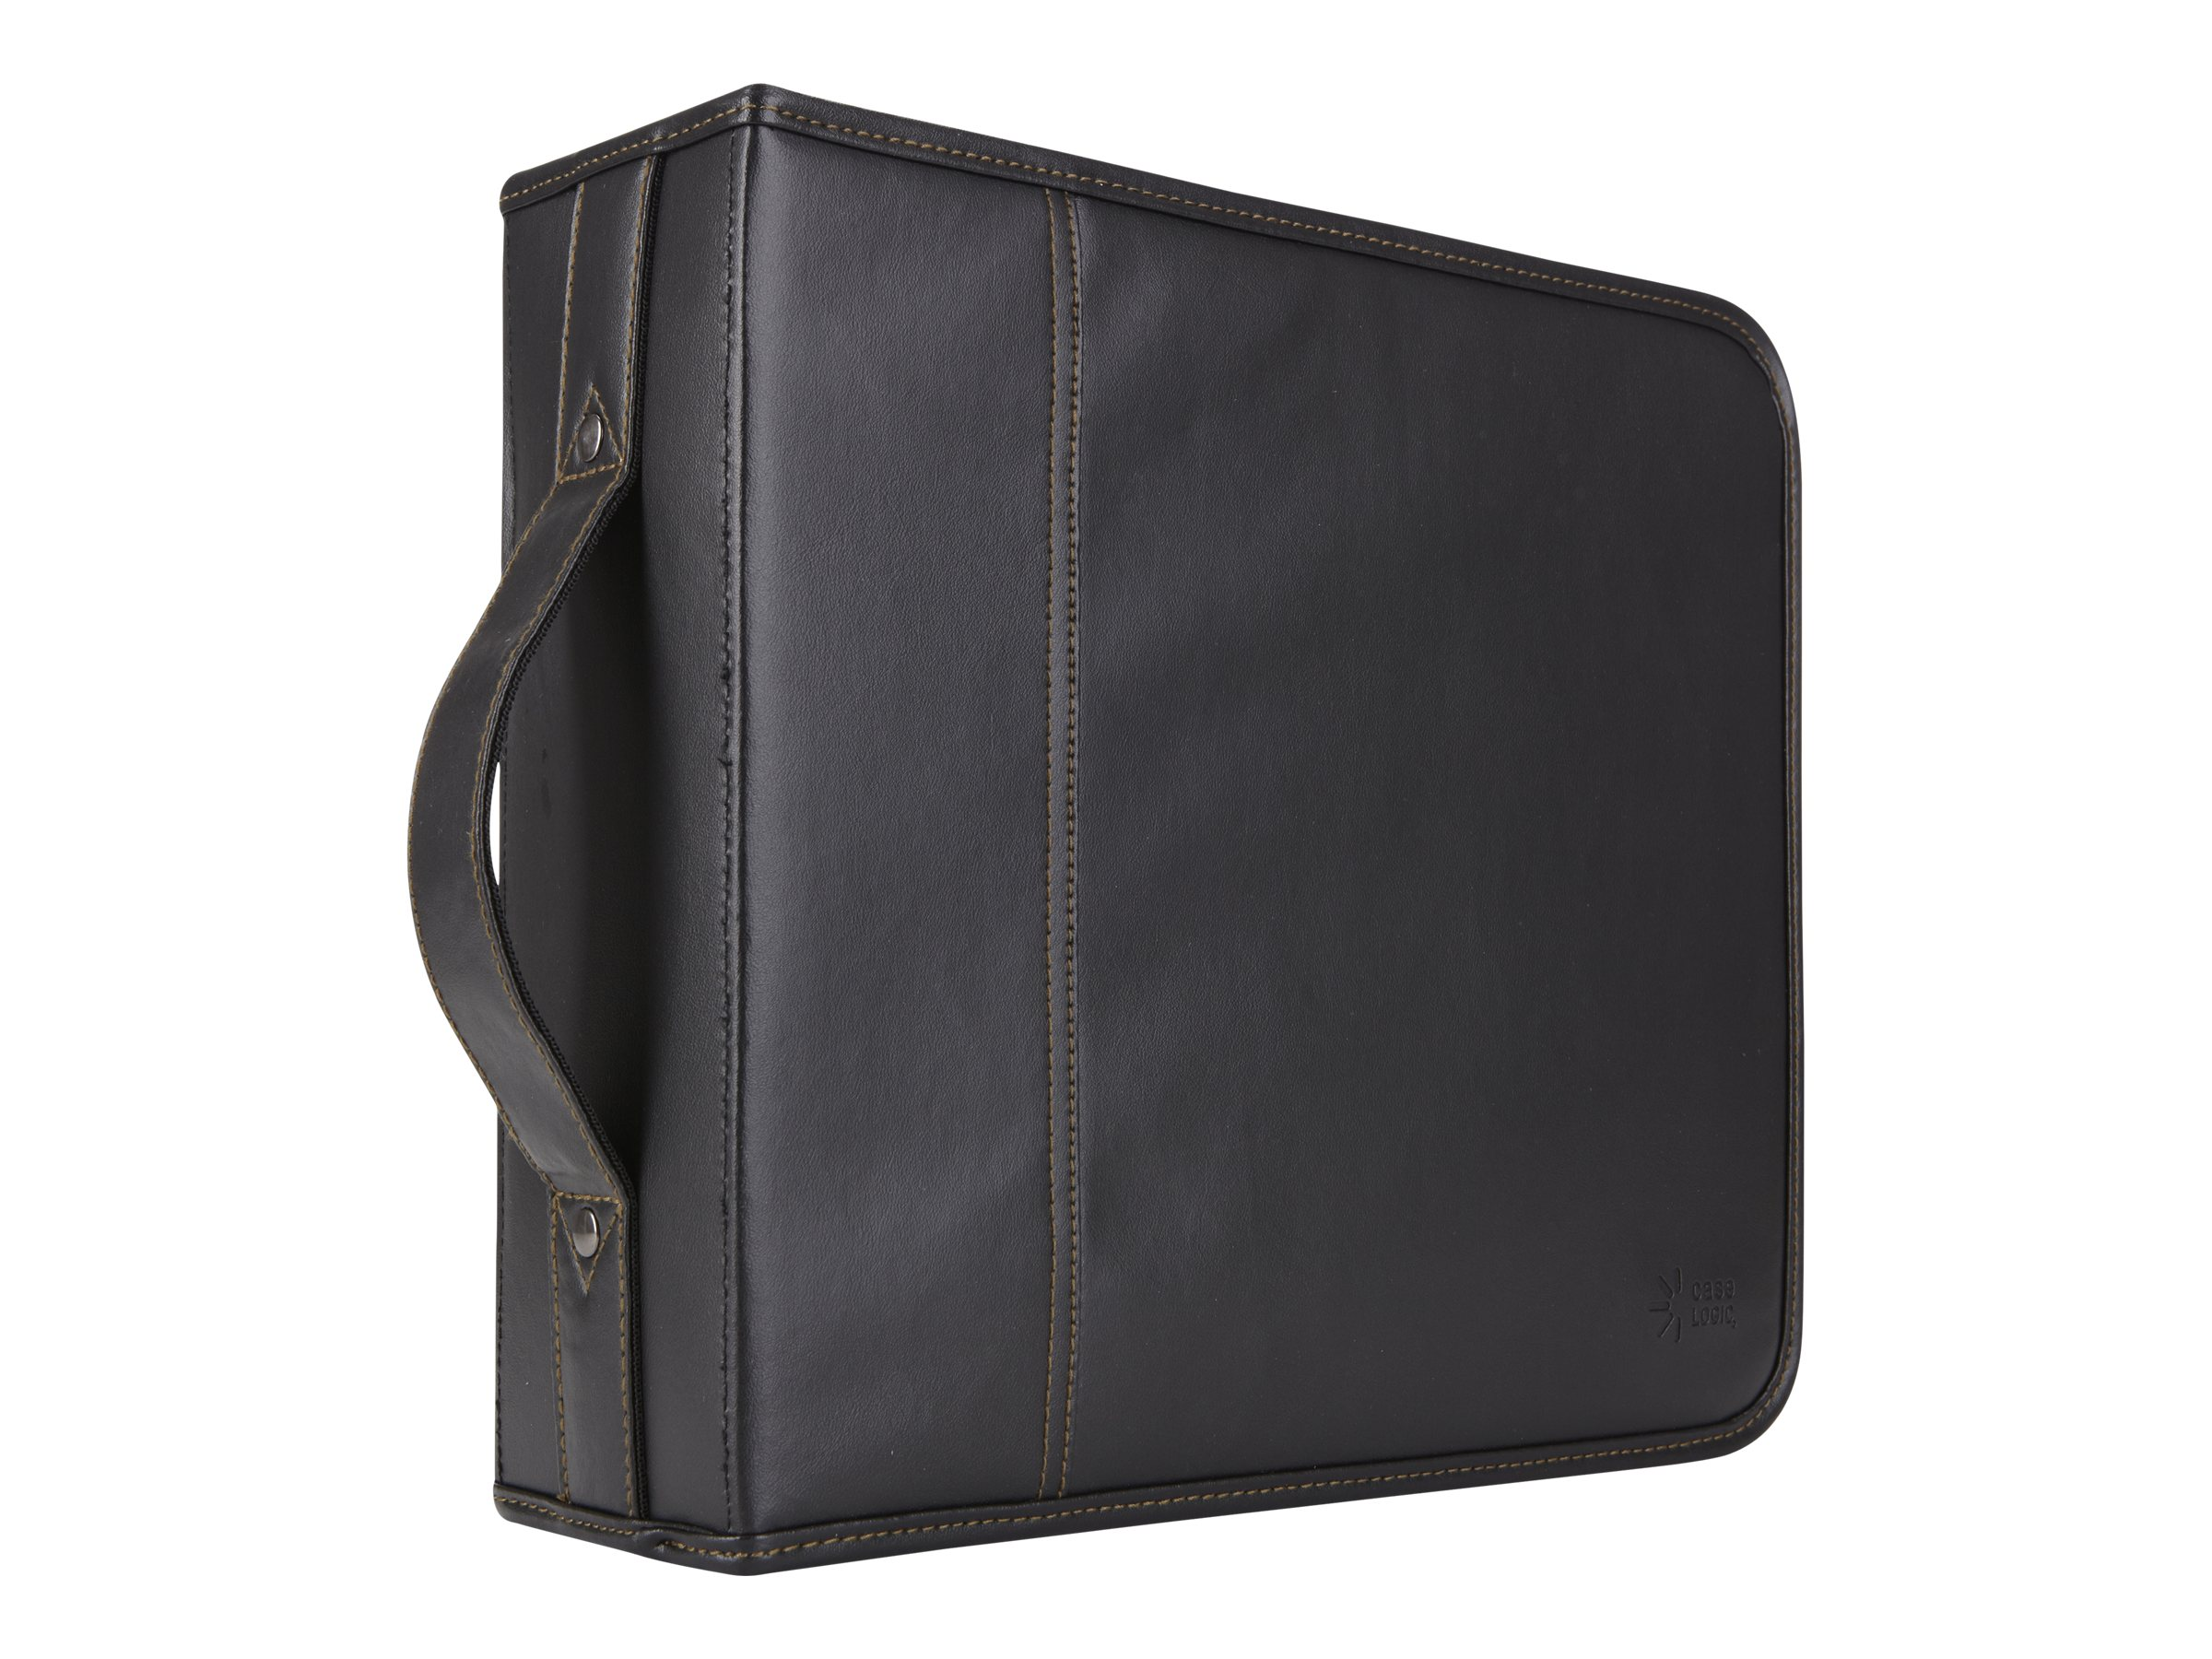 Case Logic CD Wallet; 208 Disc Capacity - Black Koskin